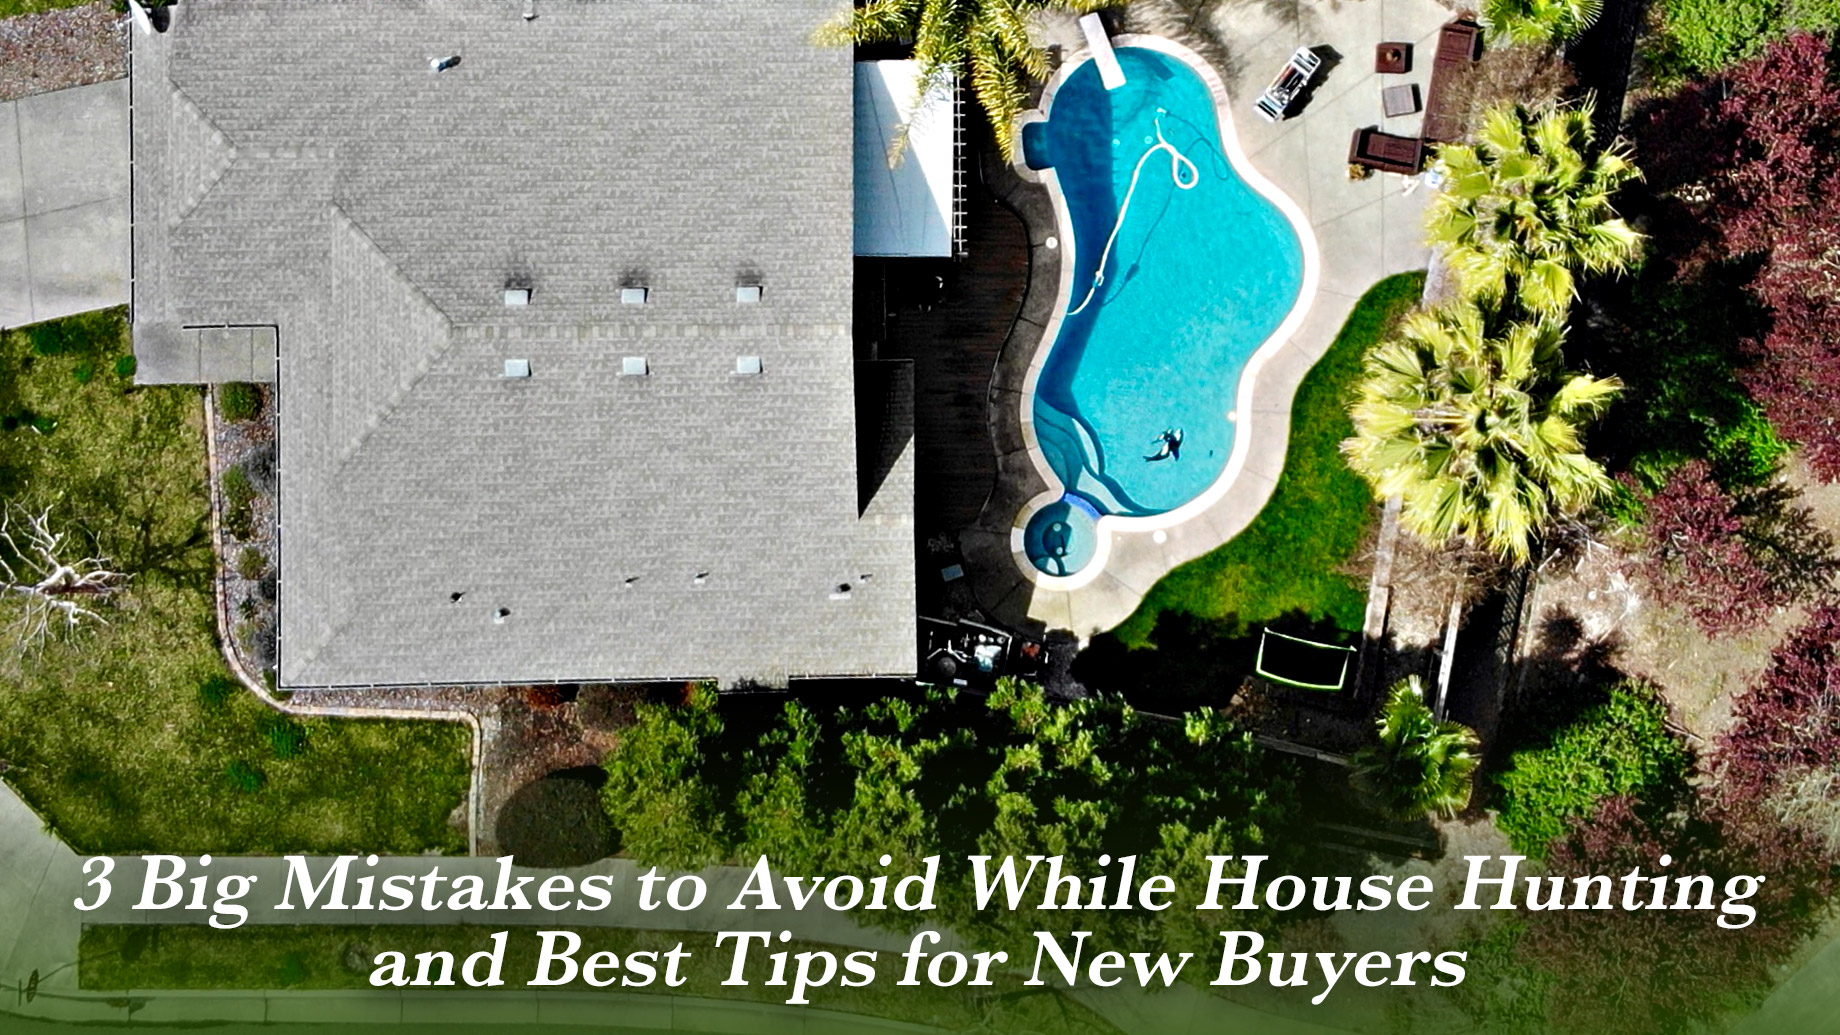 3 Big Mistakes to Avoid While House Hunting and Best Tips for New Buyers